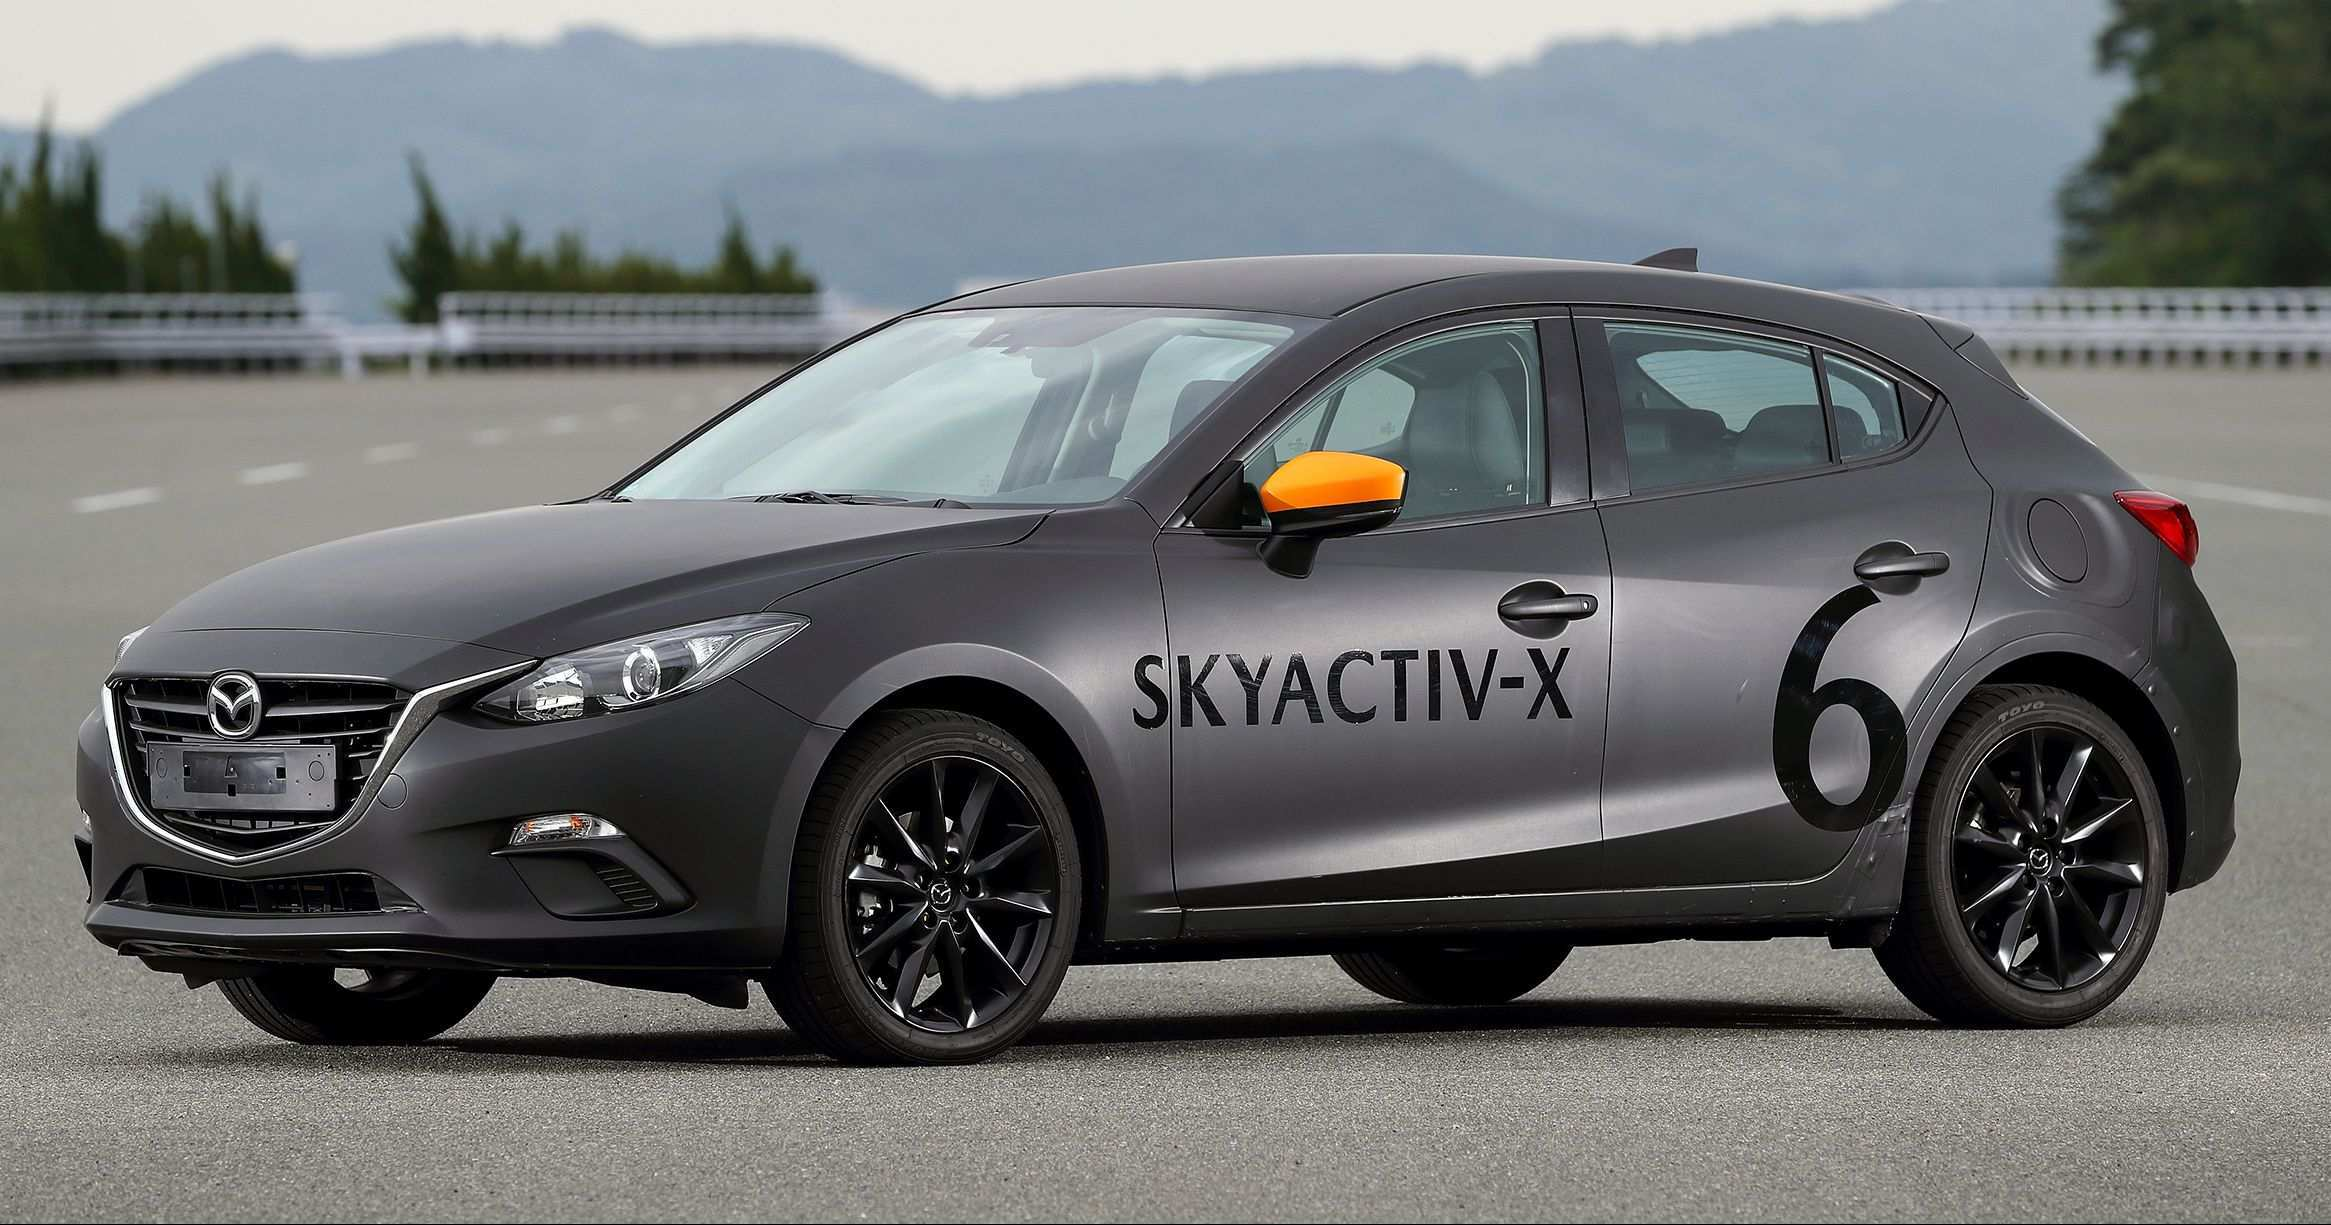 14 Gallery of Mazda Skyactiv X 2020 Performance and New Engine for Mazda Skyactiv X 2020